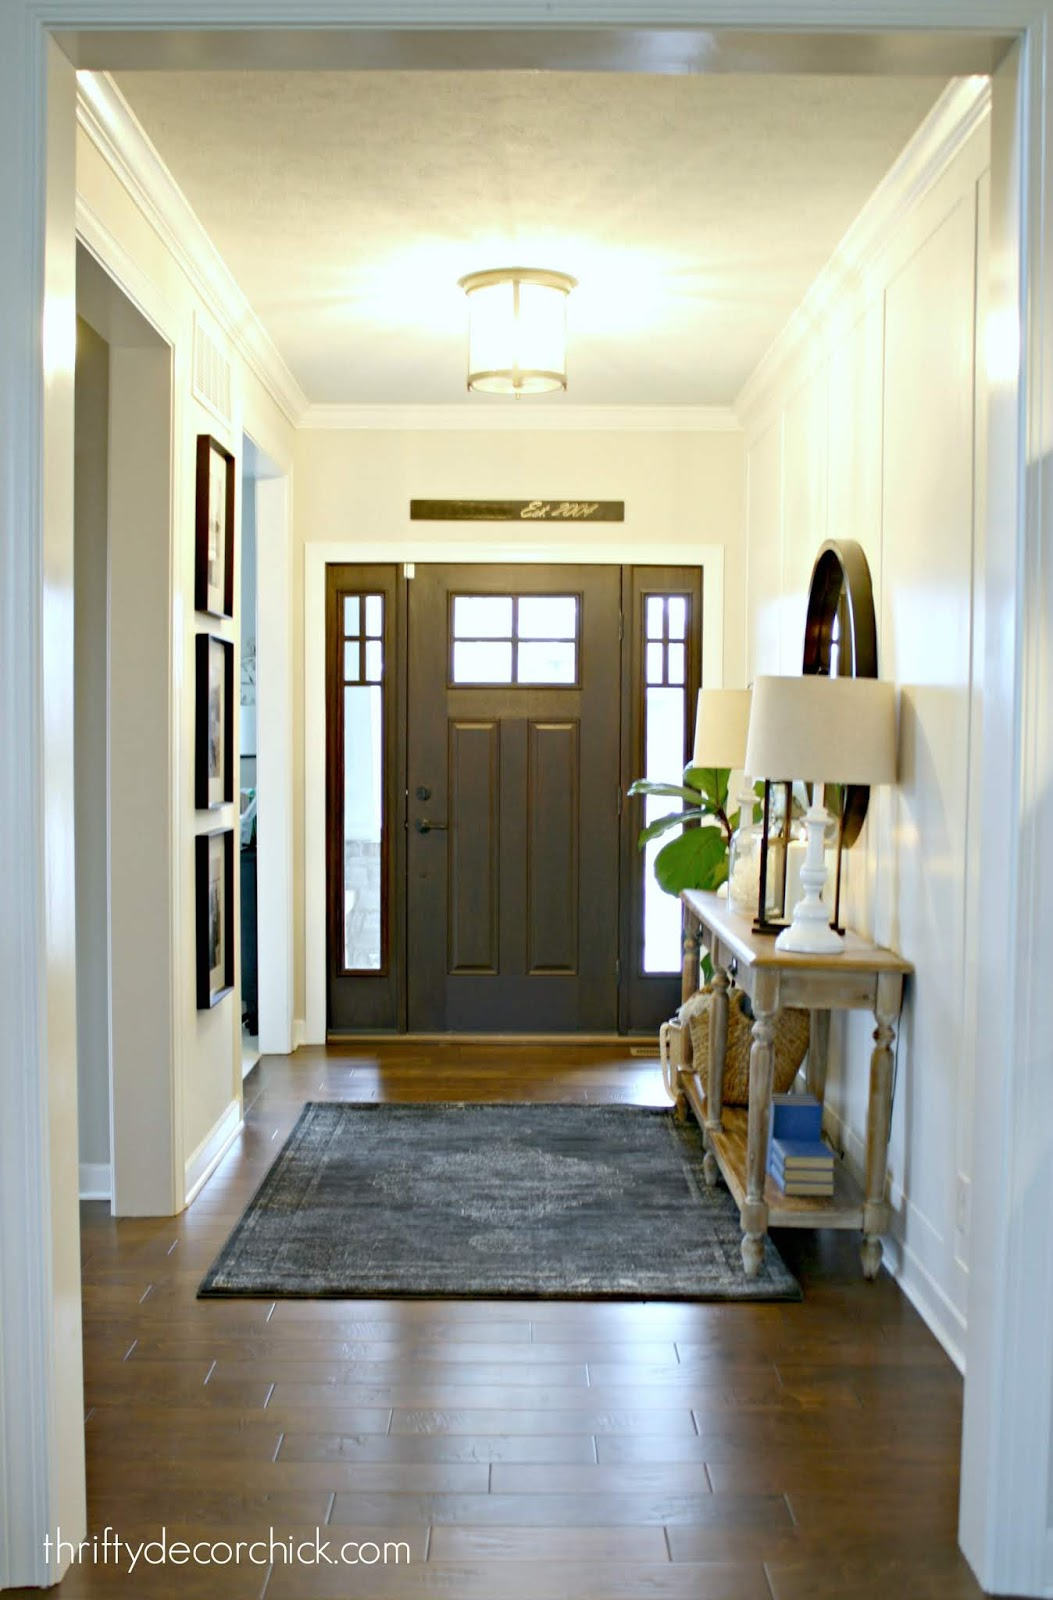 Decorating a foyer with table, mirror and rug